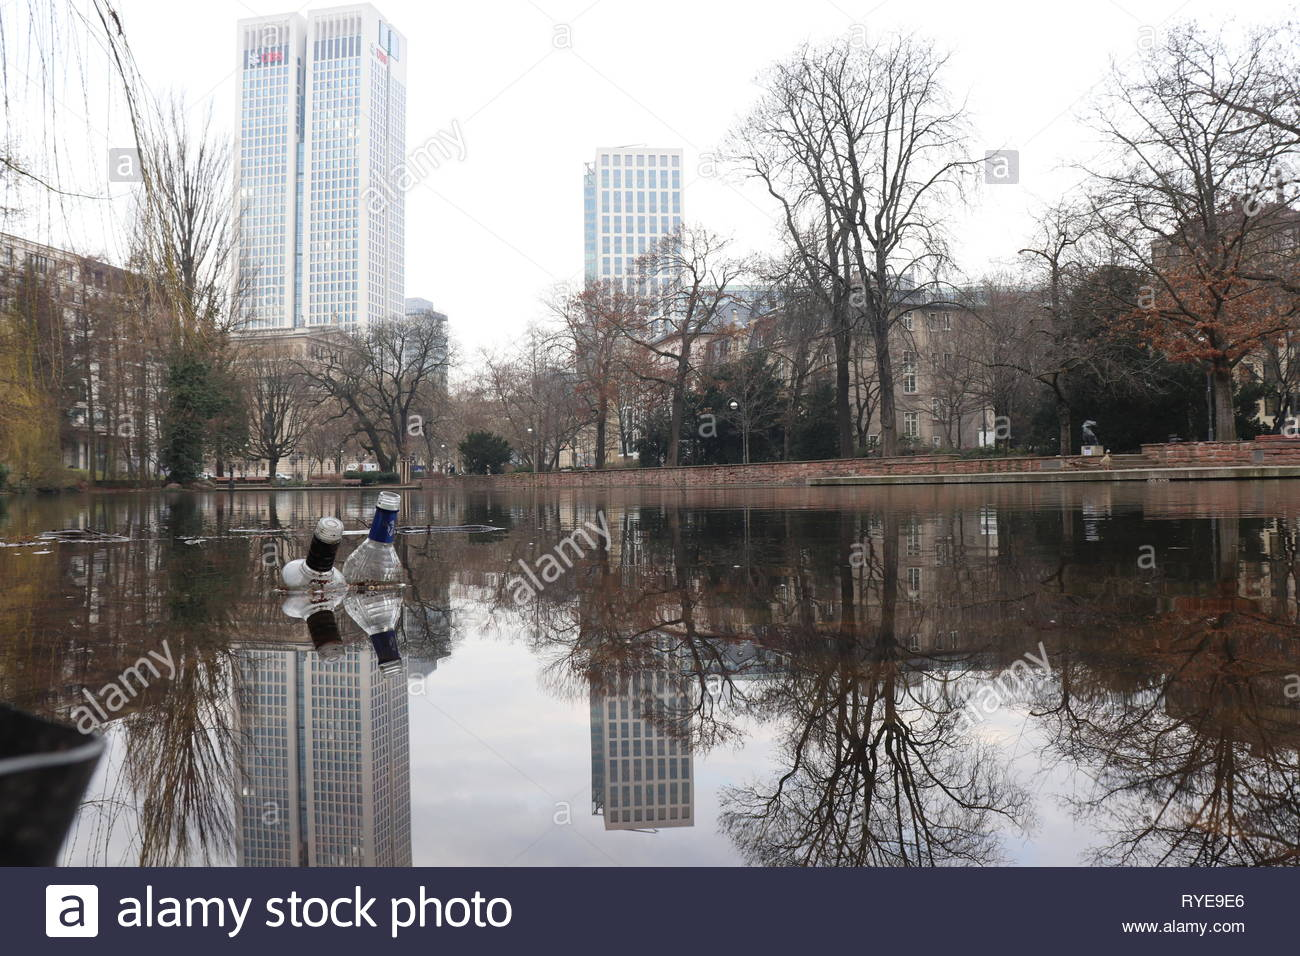 Alcohol bottles in the water at Bockenheimer Anlage, a pond in Frankfurt am Main in Germany Stock Photo